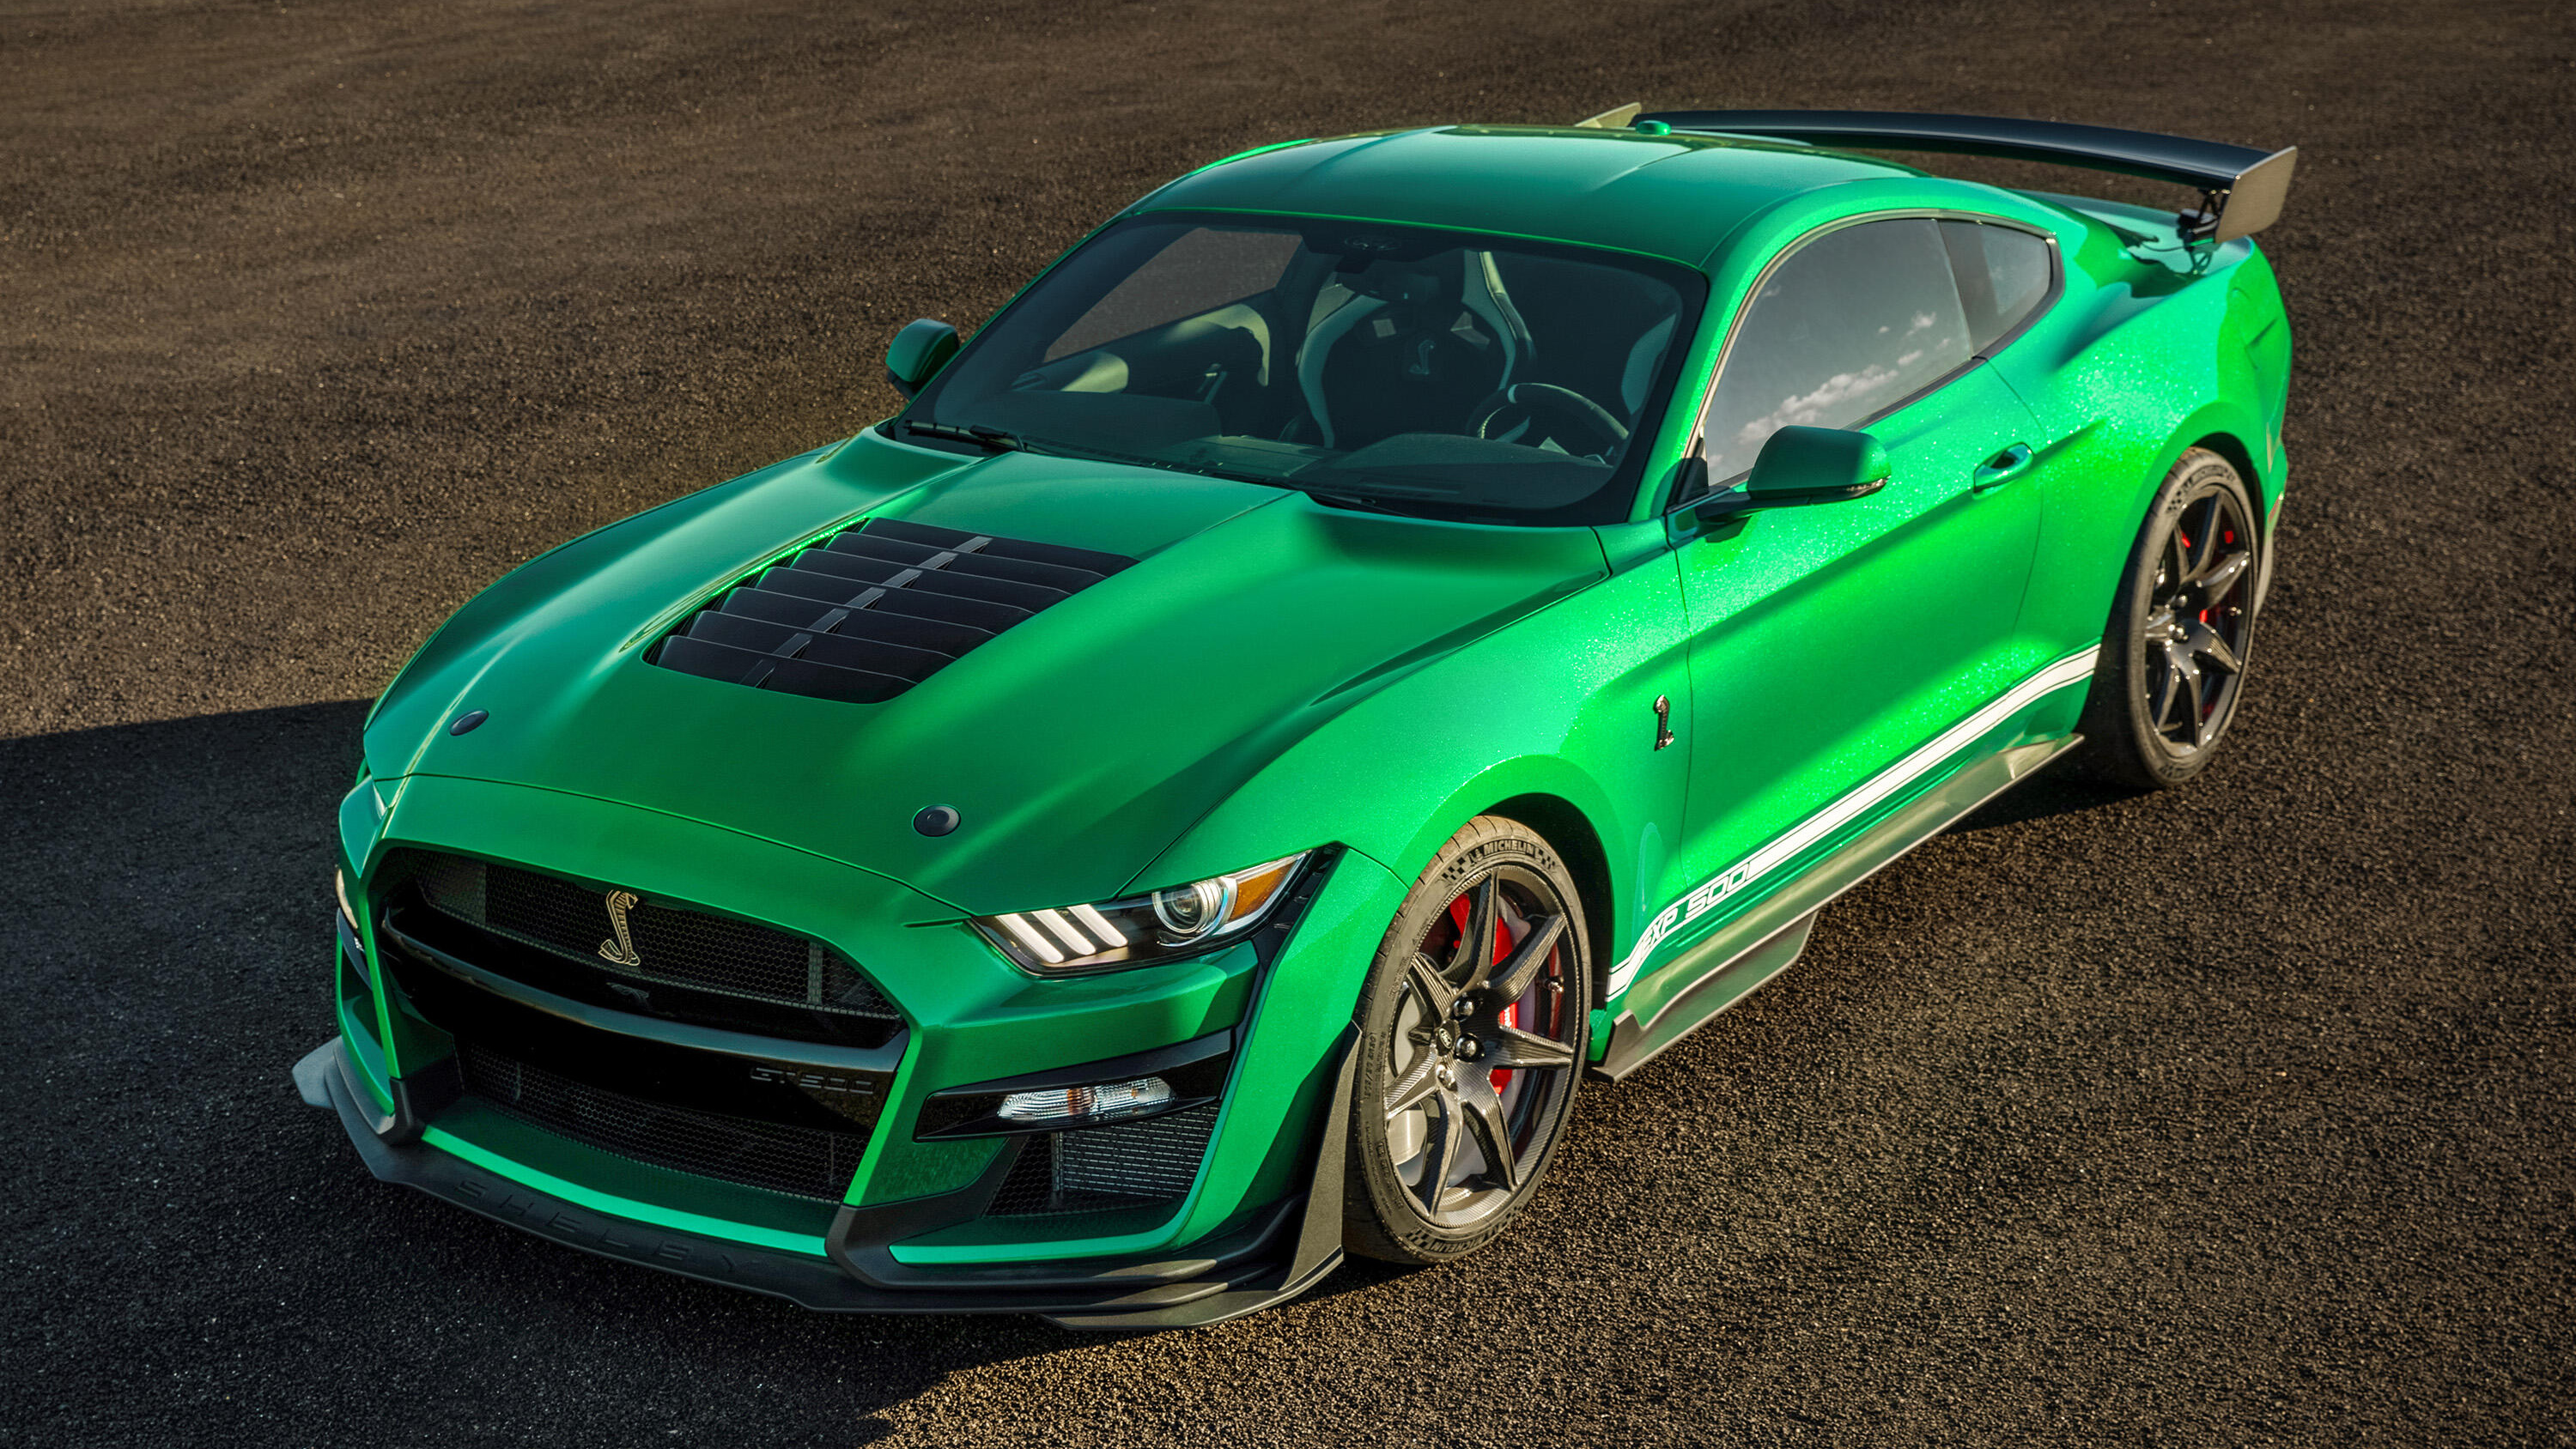 2020 Ford Mustang Shelby GT500 Wallpaper | HD Car ...